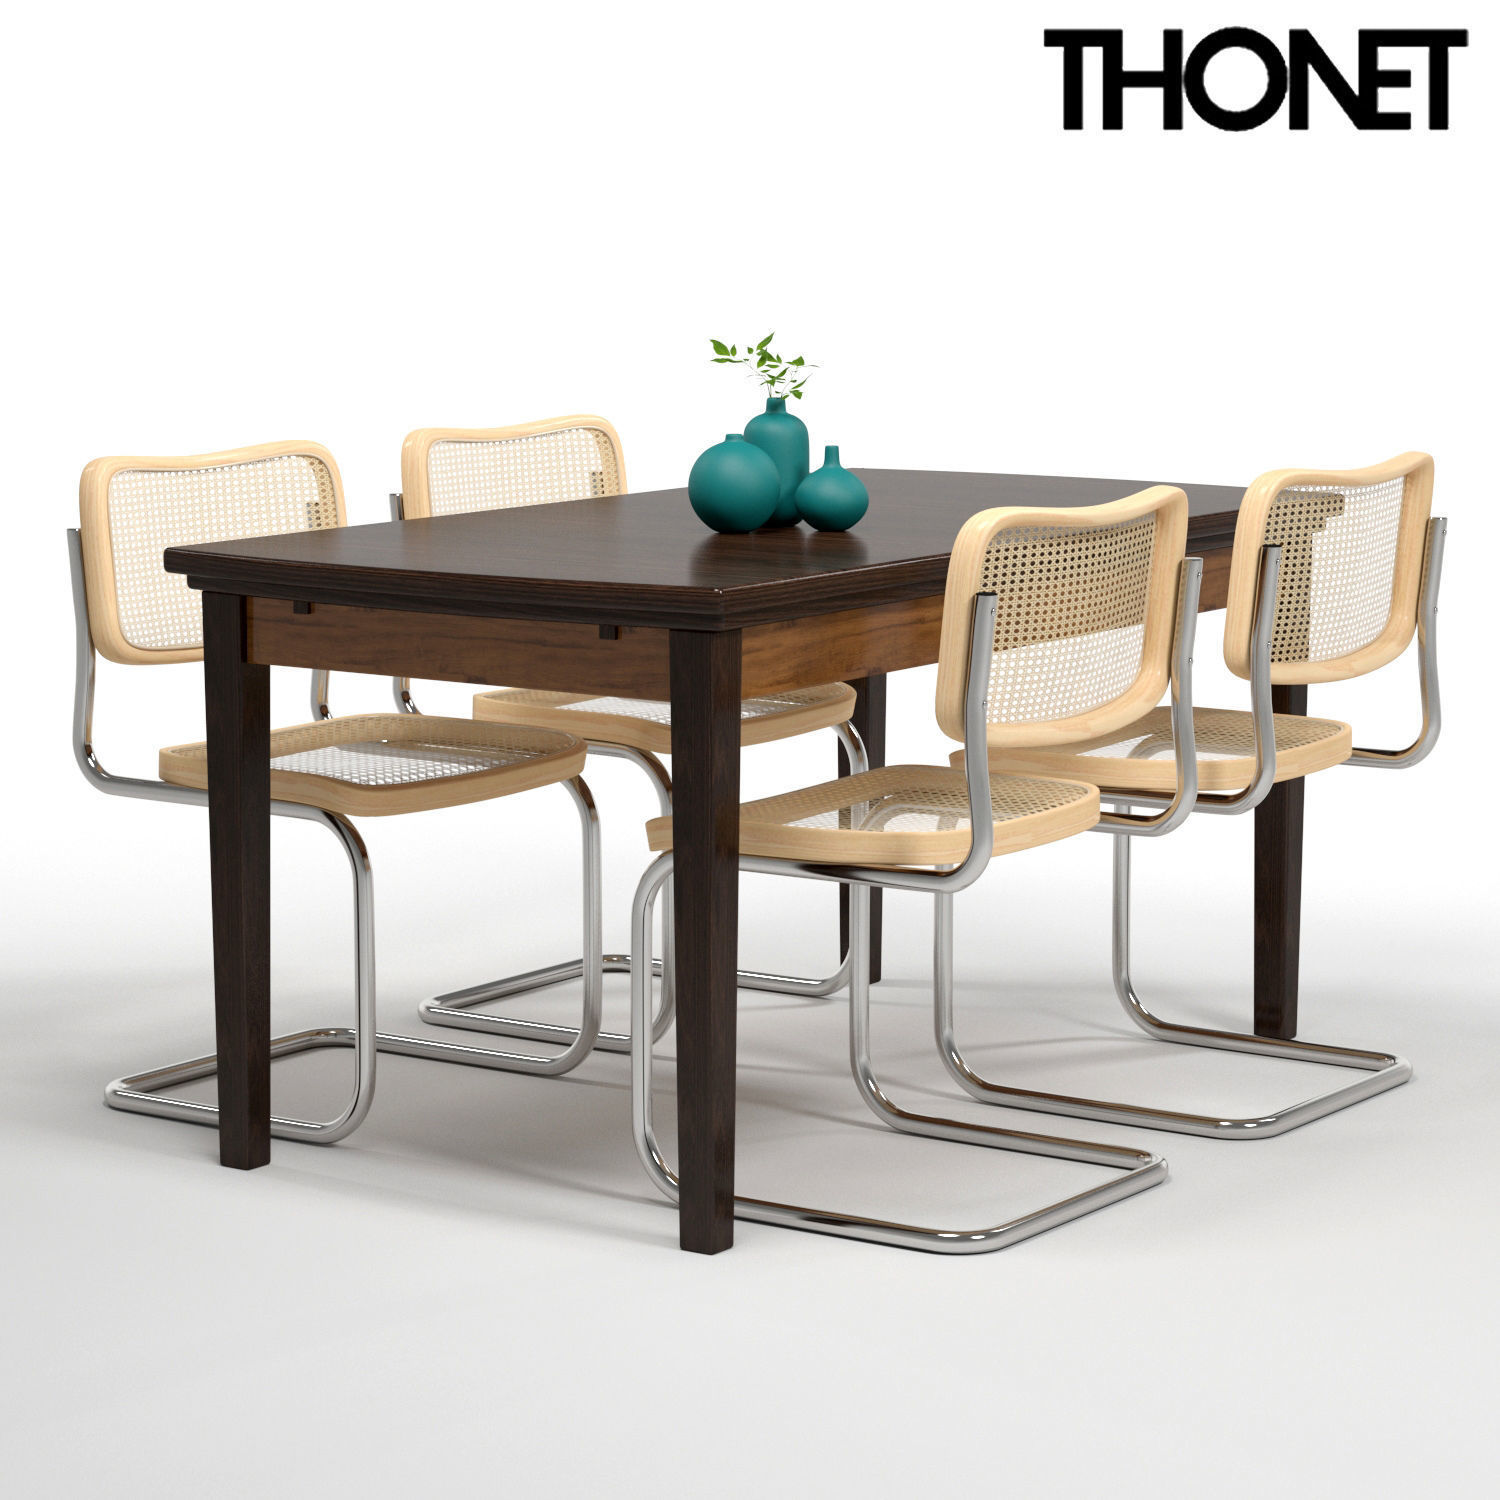 Thonet S32 Thonet Chair S32 Wood Table 3d Model